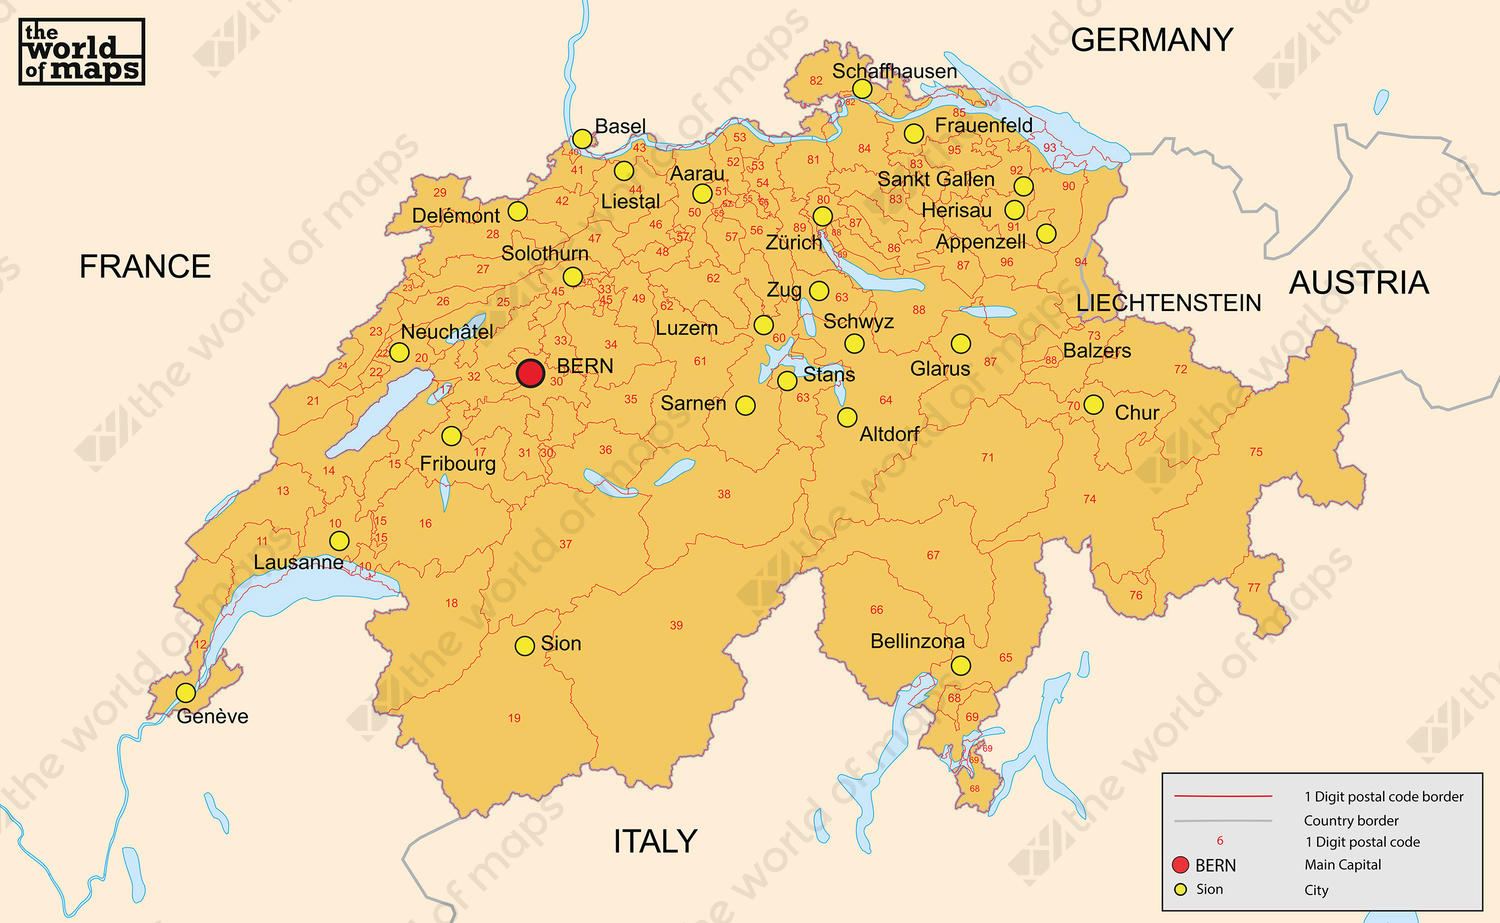 Digital postcode map Switzerland 2-digit